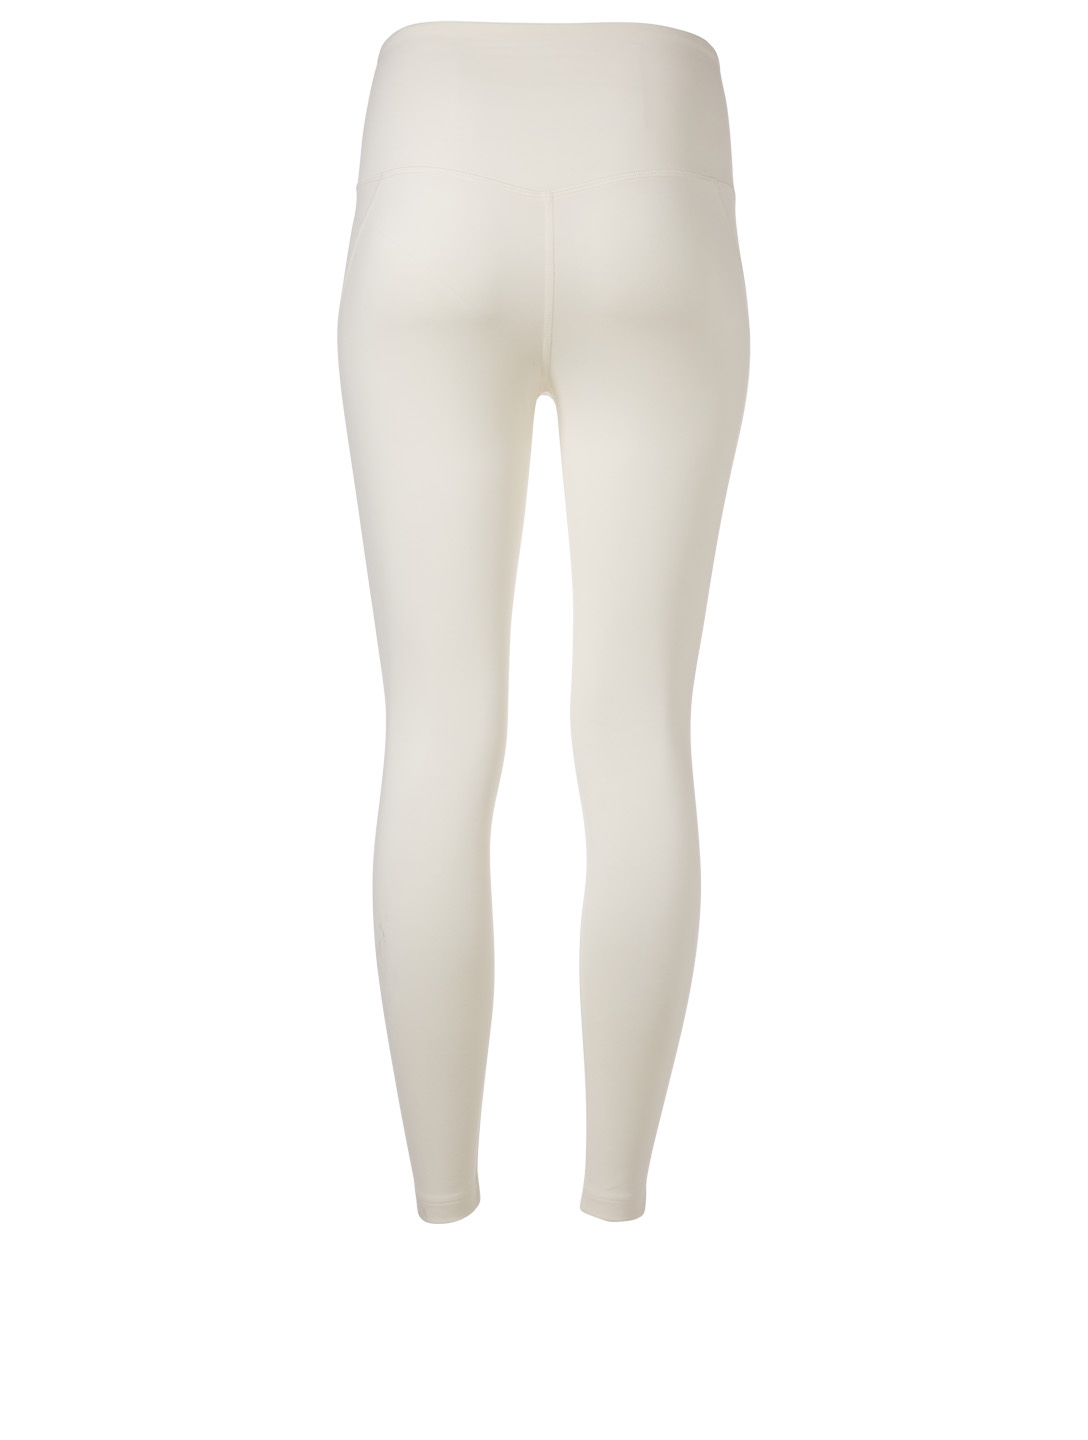 GIRLFRIEND COLLECTIVE Compressive High-Rise Legging H Project White